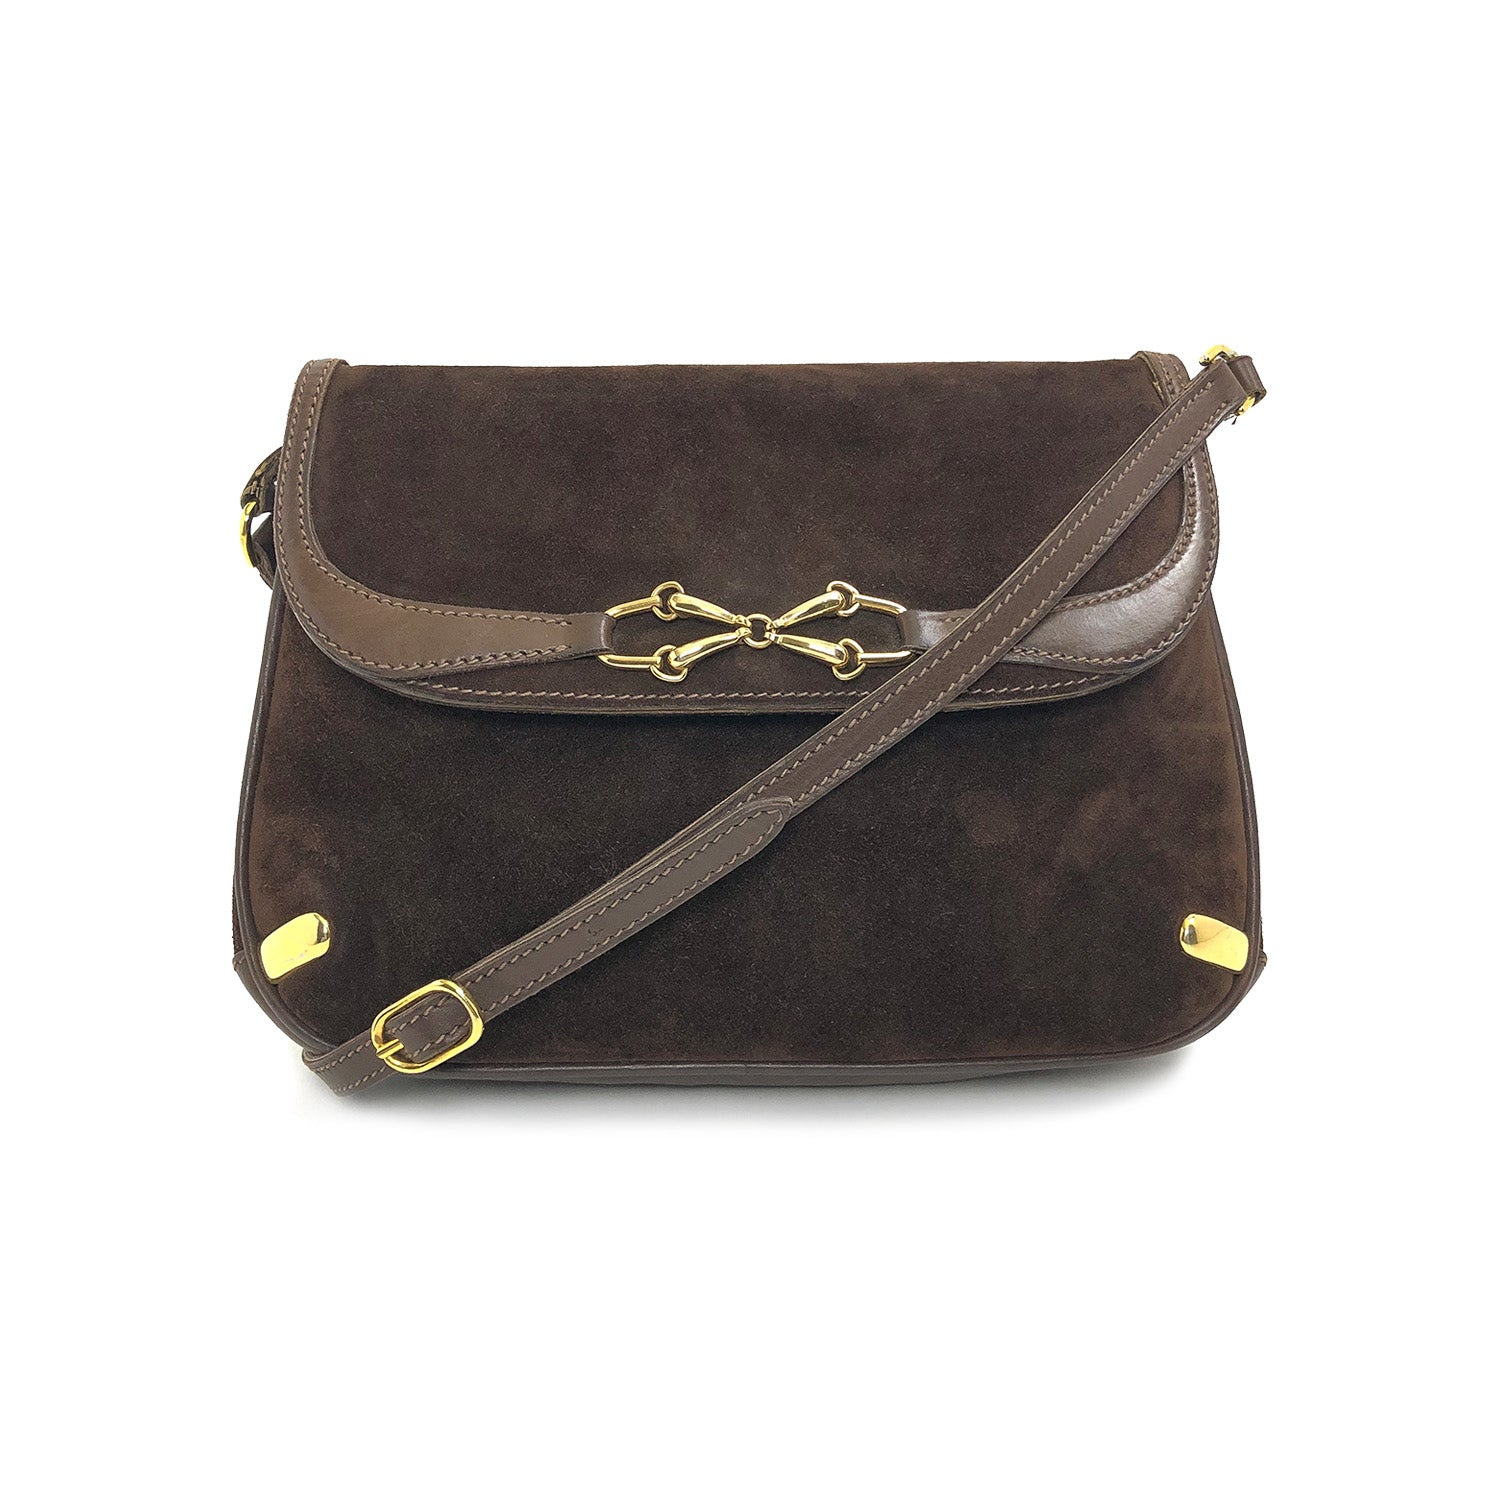 Gucci Horsebit Vintage Suede Brown Bag